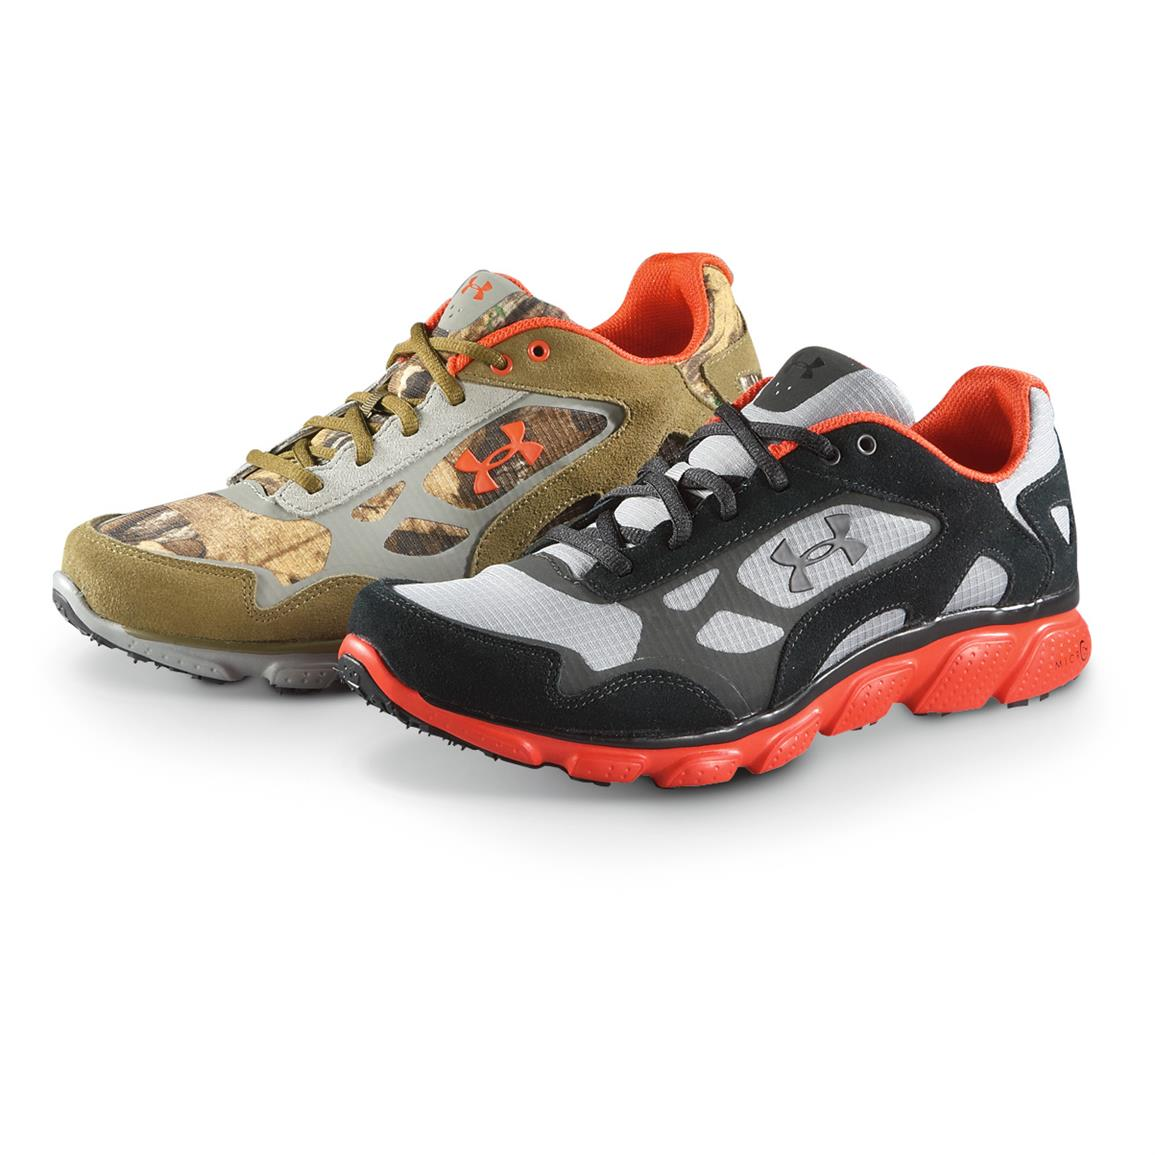 Under Armour Men's Grit Off-Road Shoe, Battleship / Storm / Viper - Realtree XTRA® / Drab / Storm